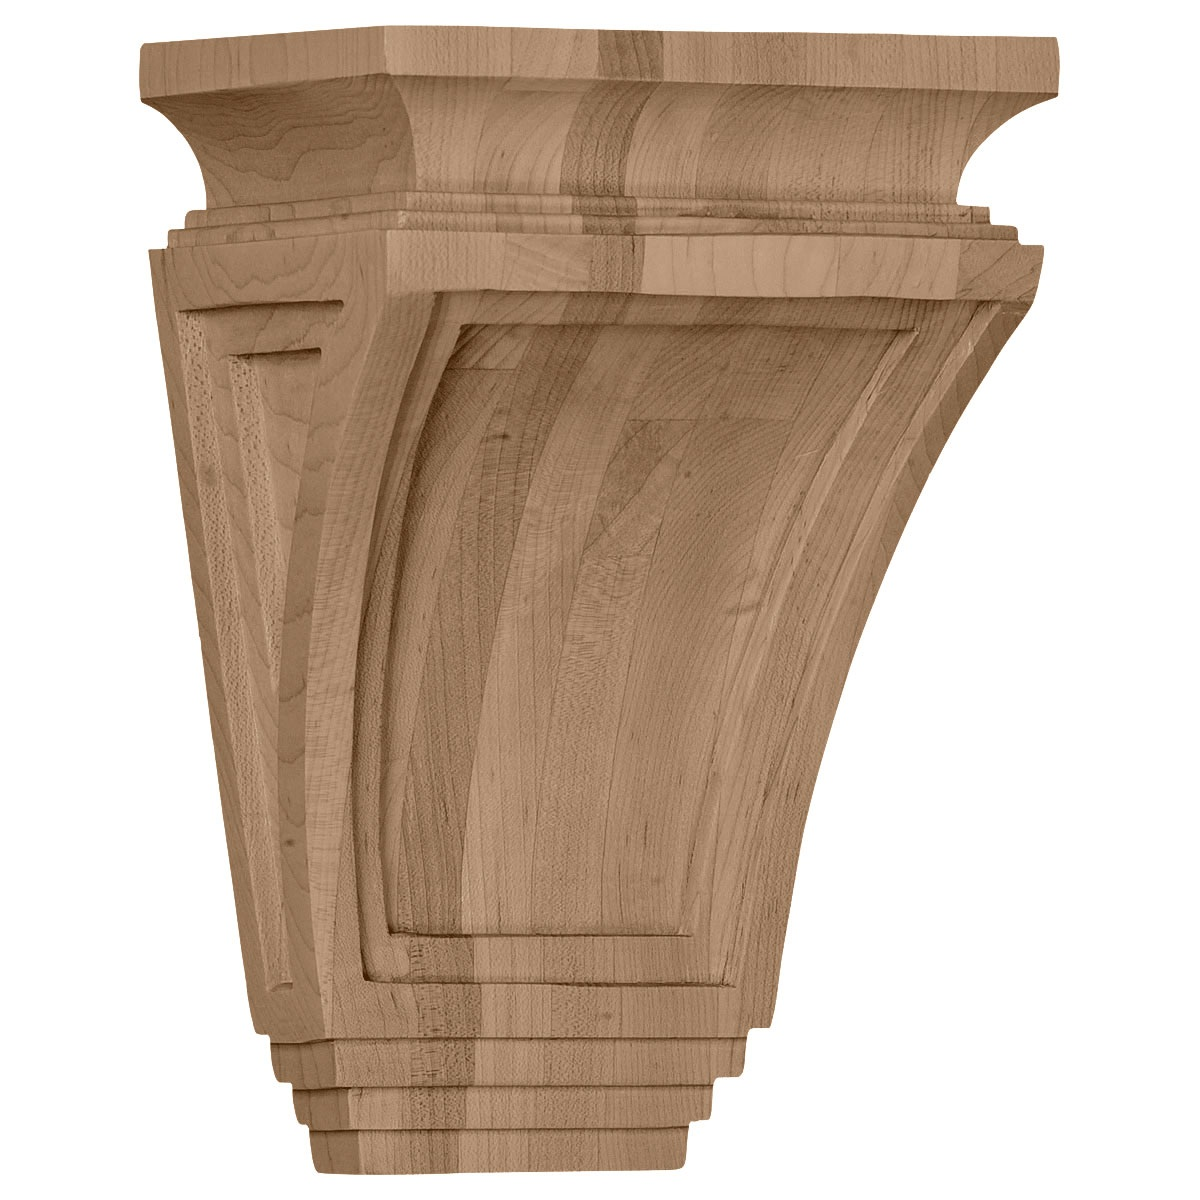 COR06X04X09AR Large Arts and Crafts Corbel